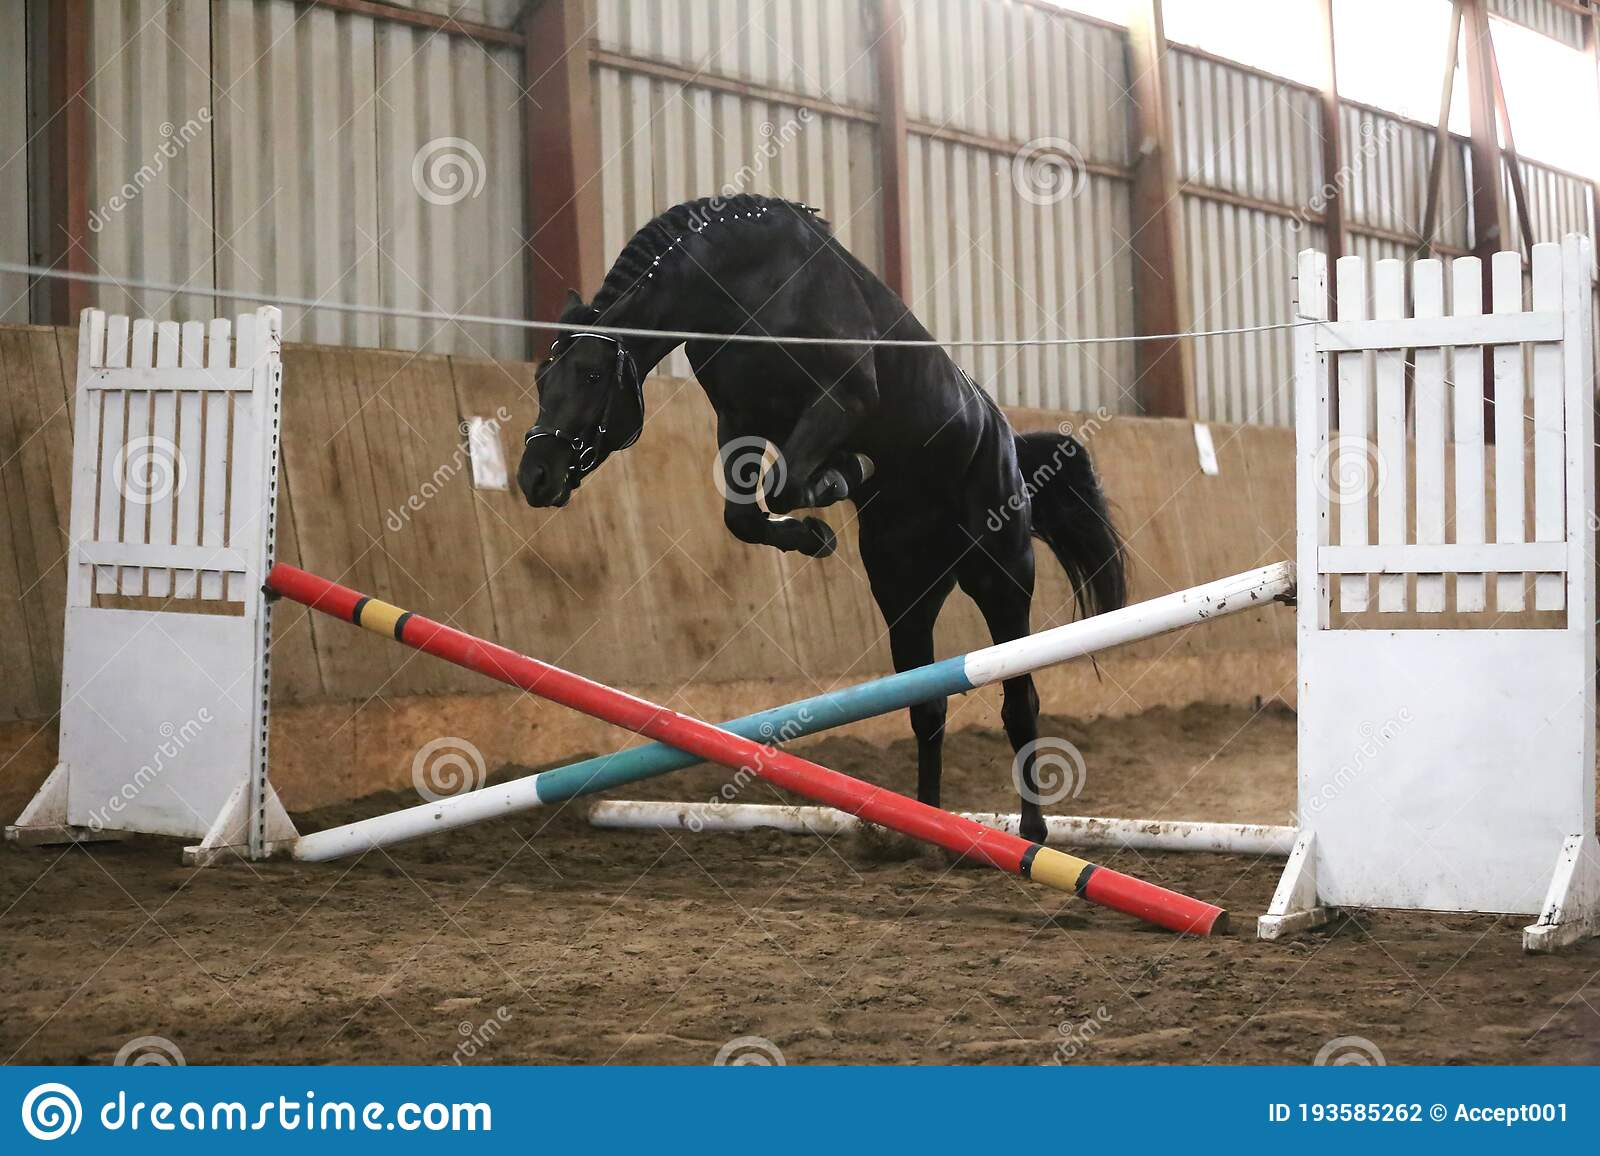 Beautiful Young Purebred Horse Jump Over Barrier Free Jumping In The Riding Hall Stock Photo Image Of Animals Beast 193585262